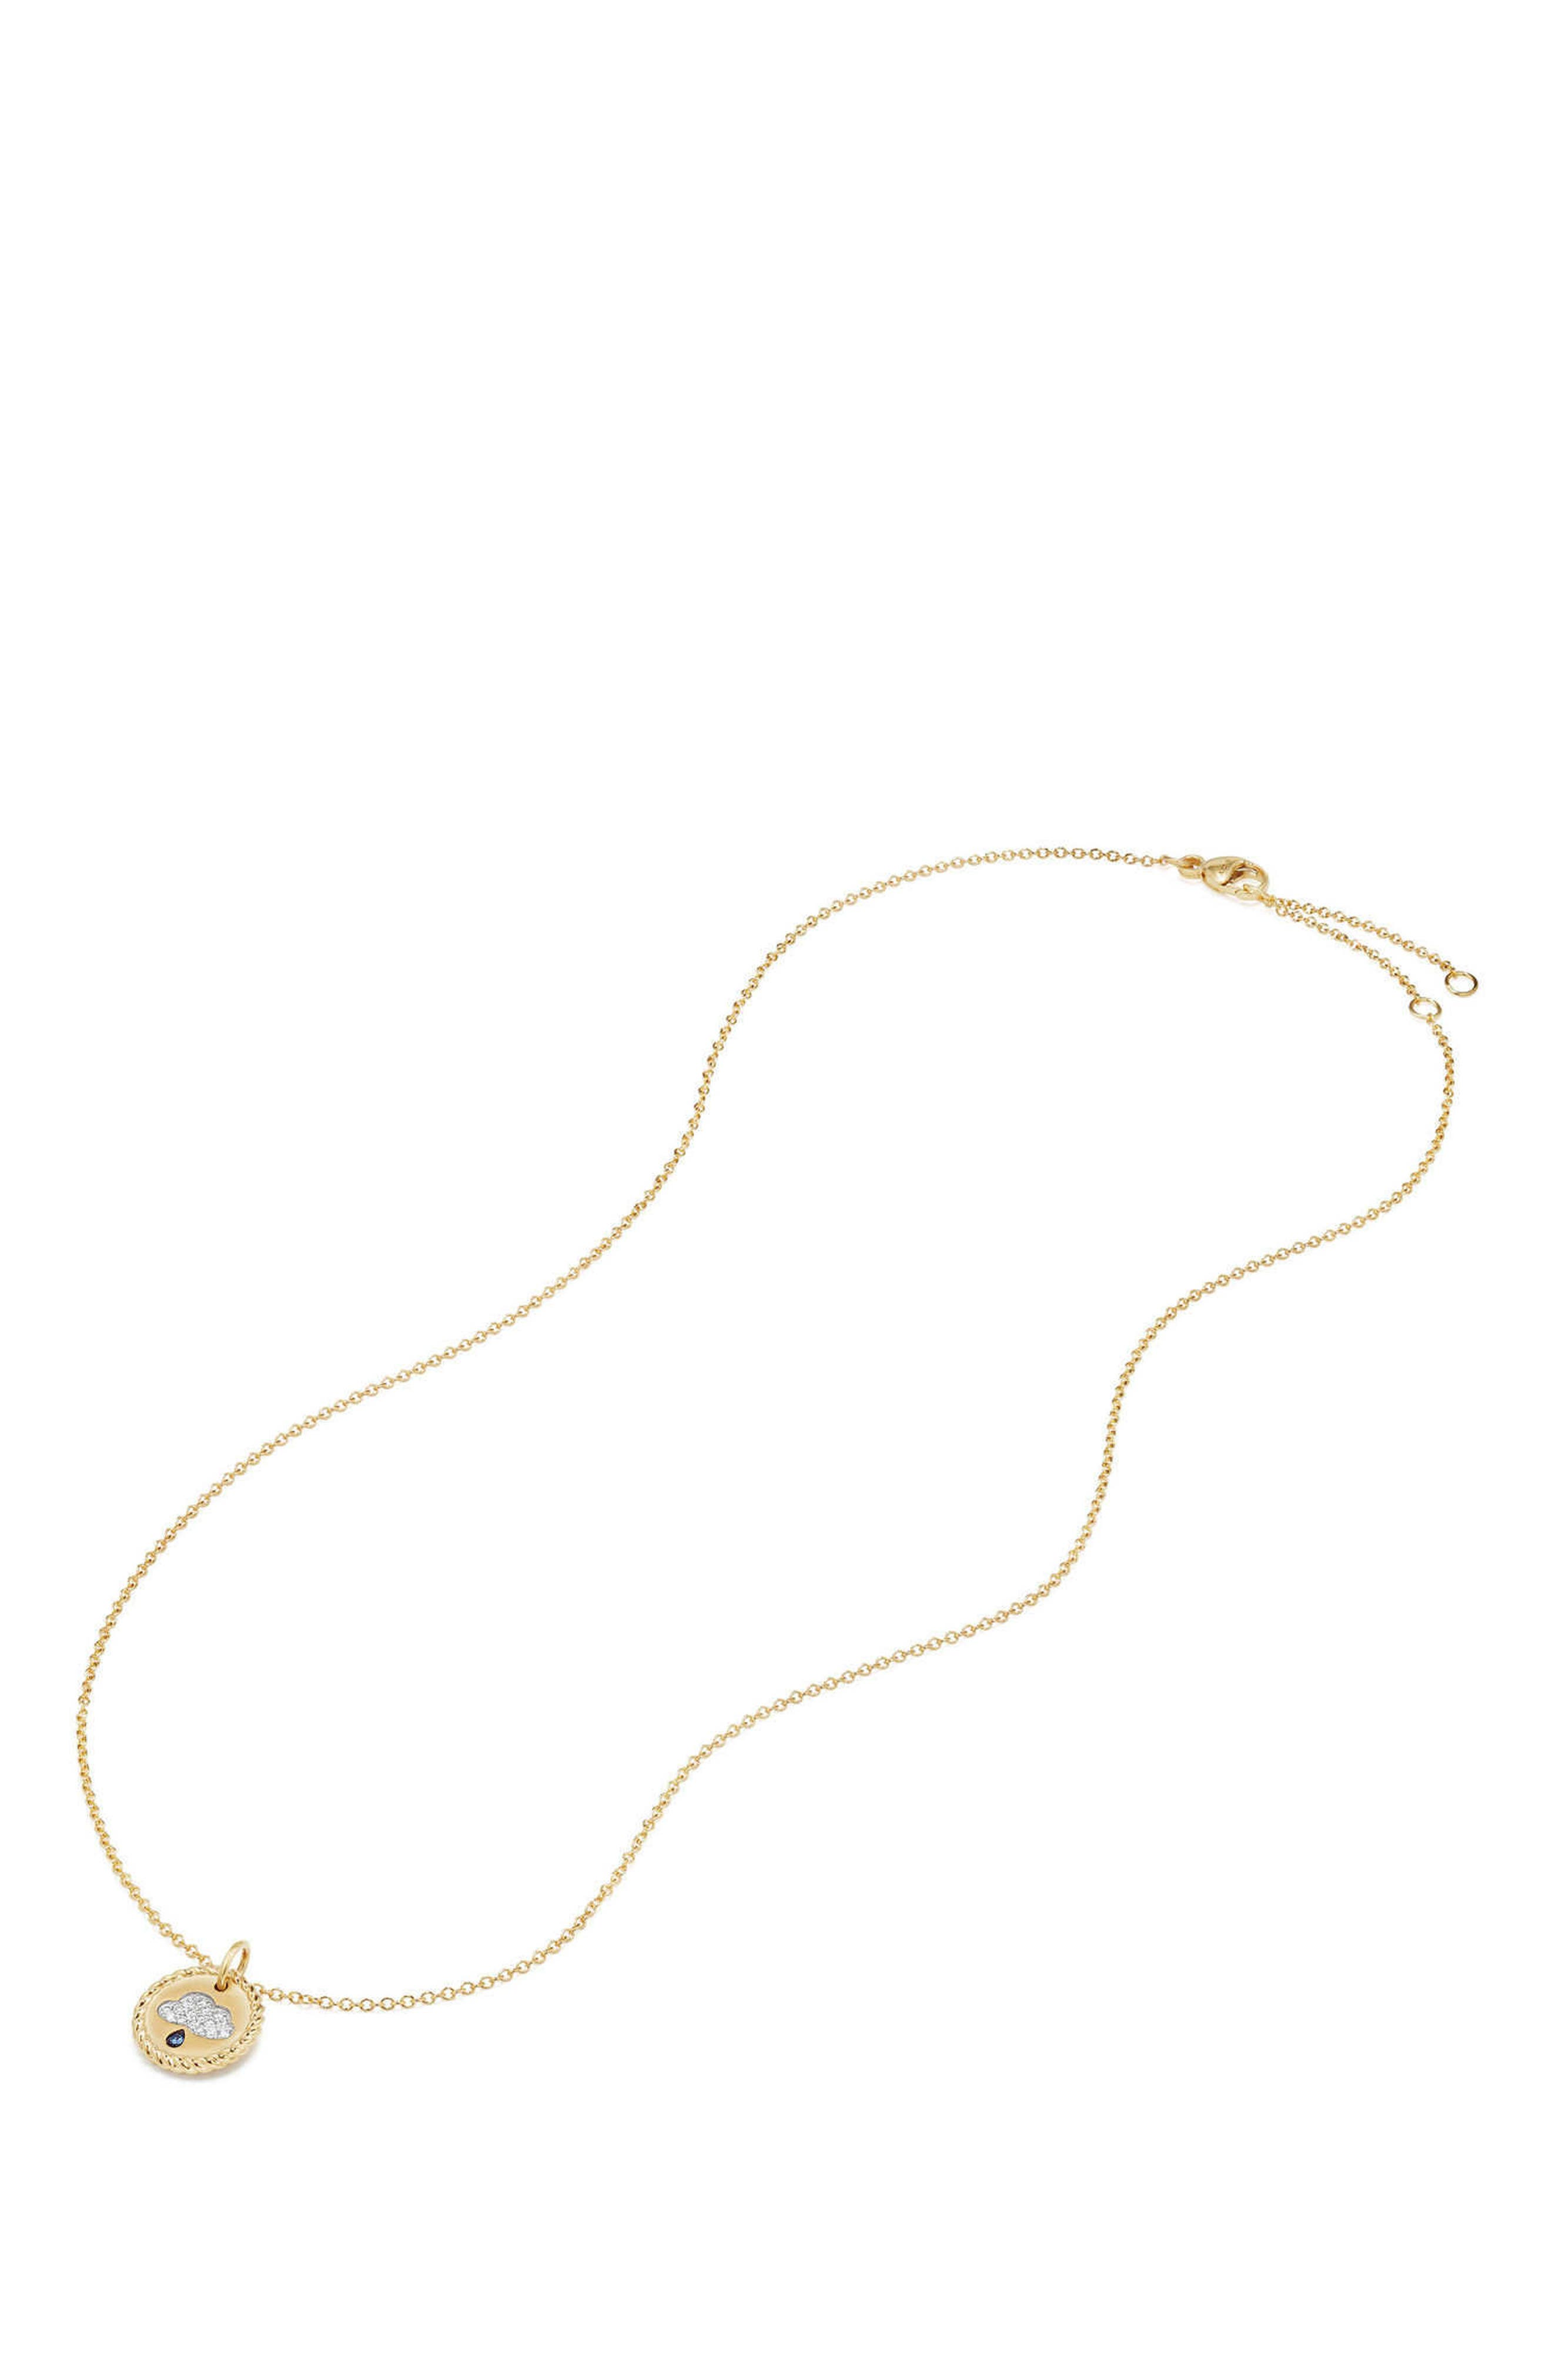 Cable Collectibles Raincloud Necklace with Diamonds & Light Blue Sapphires in 18K Gold,                             Alternate thumbnail 2, color,                             GOLD/ DIAMOND/ BLUE SAPPHIRE